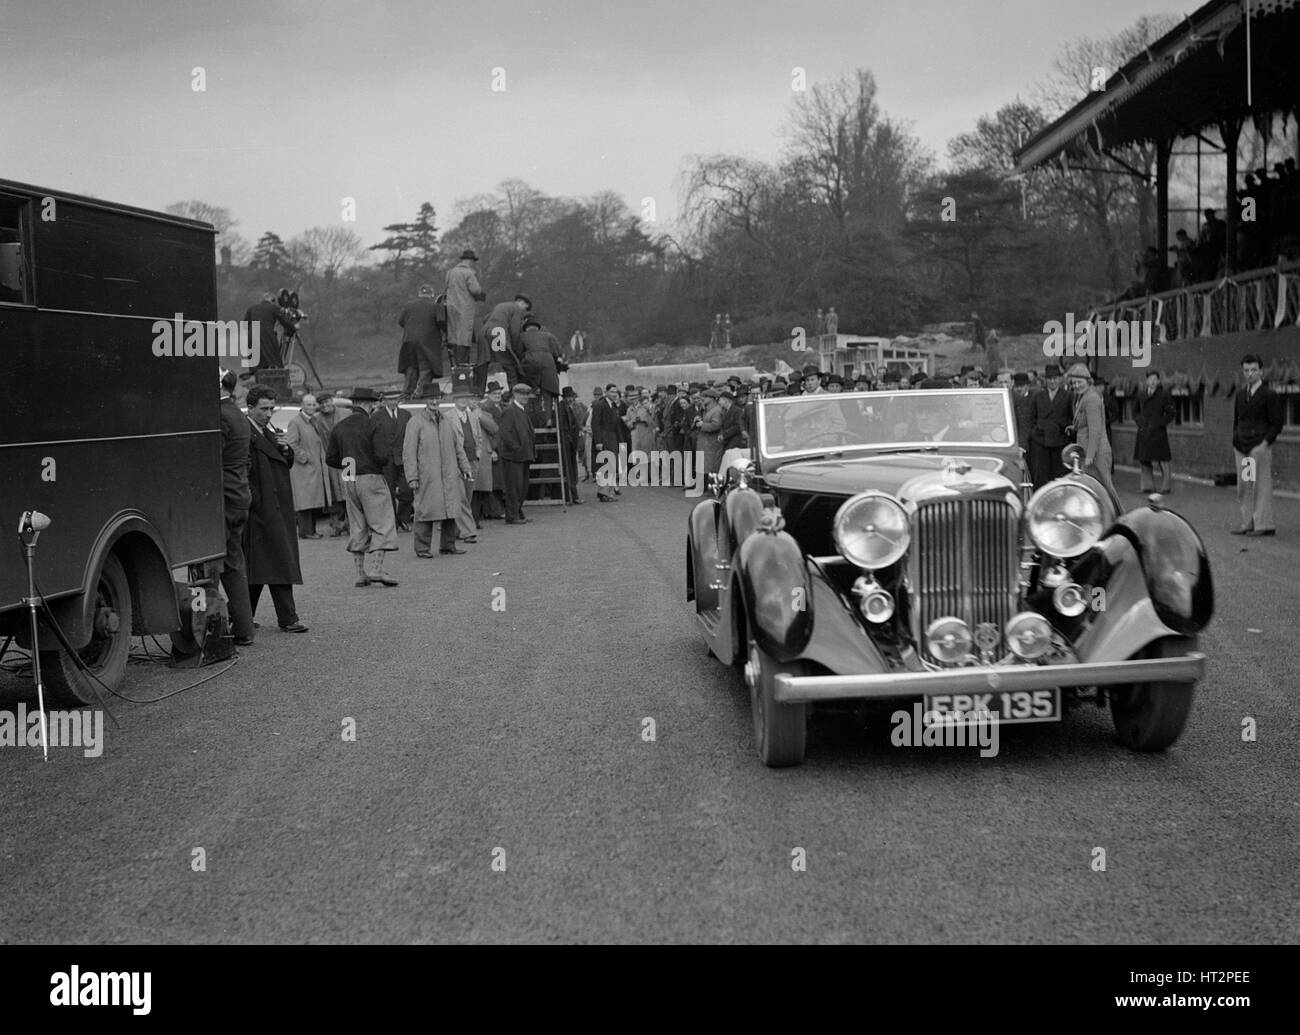 Lagonda open 4-seater tourer, possibly owned by Earl Howe, Crystal Palace, London, 1939. Artist: Bill Brunell. - Stock Image